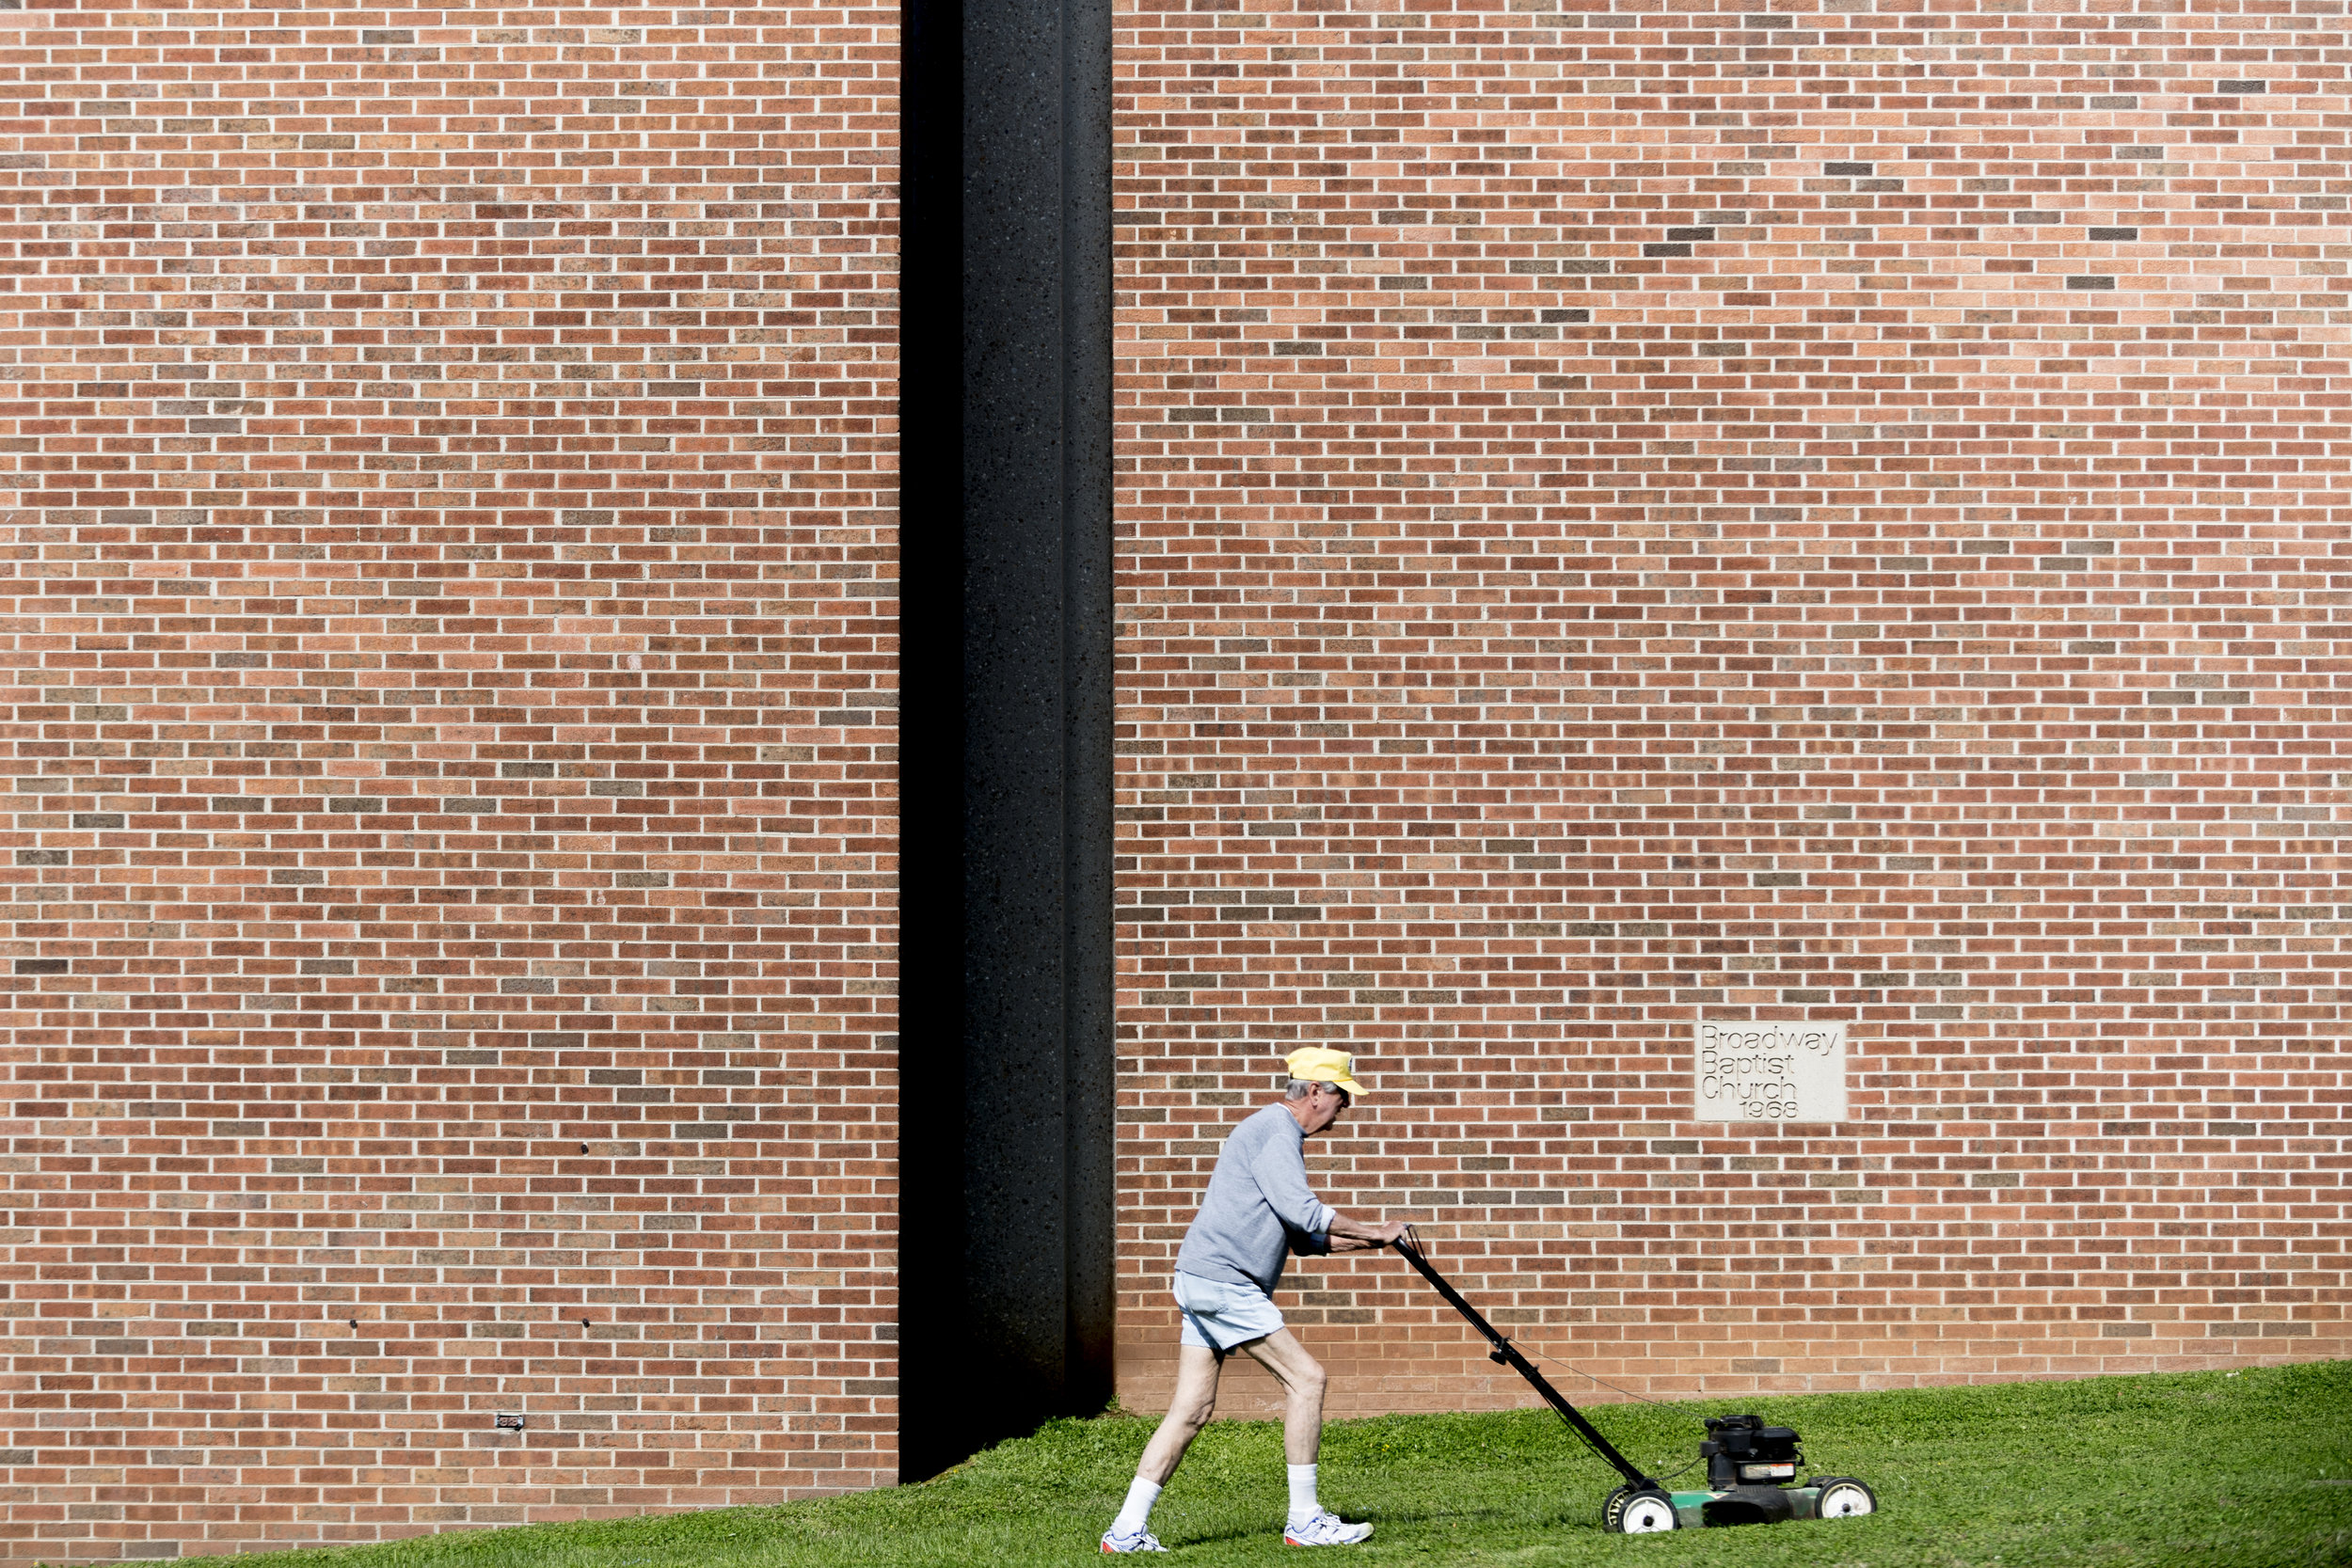 Richard  Bellah , of Knoxville, mows the lawn in front of Broadway Baptist Church in Knoxville. Bellah , who is a member of the church, has been doing landscaping for the church for eight years.